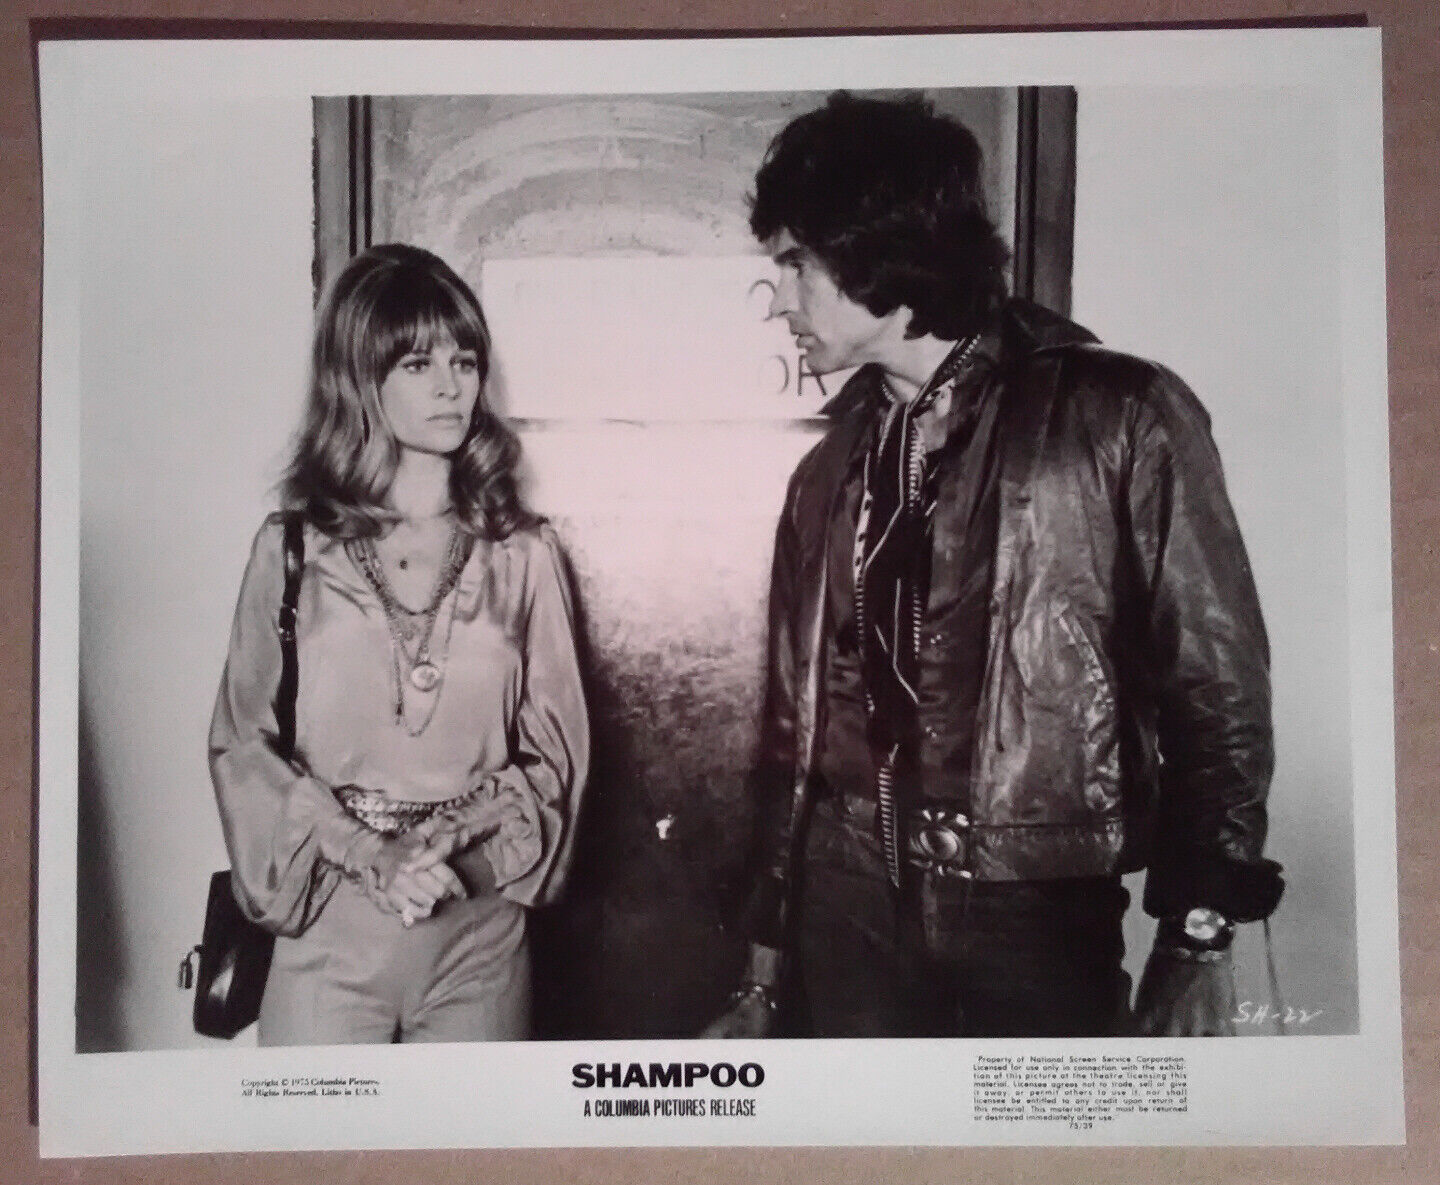 8x10 Photo SHAMPOO 1975 Warren Beatty Julie Christie - $6.50